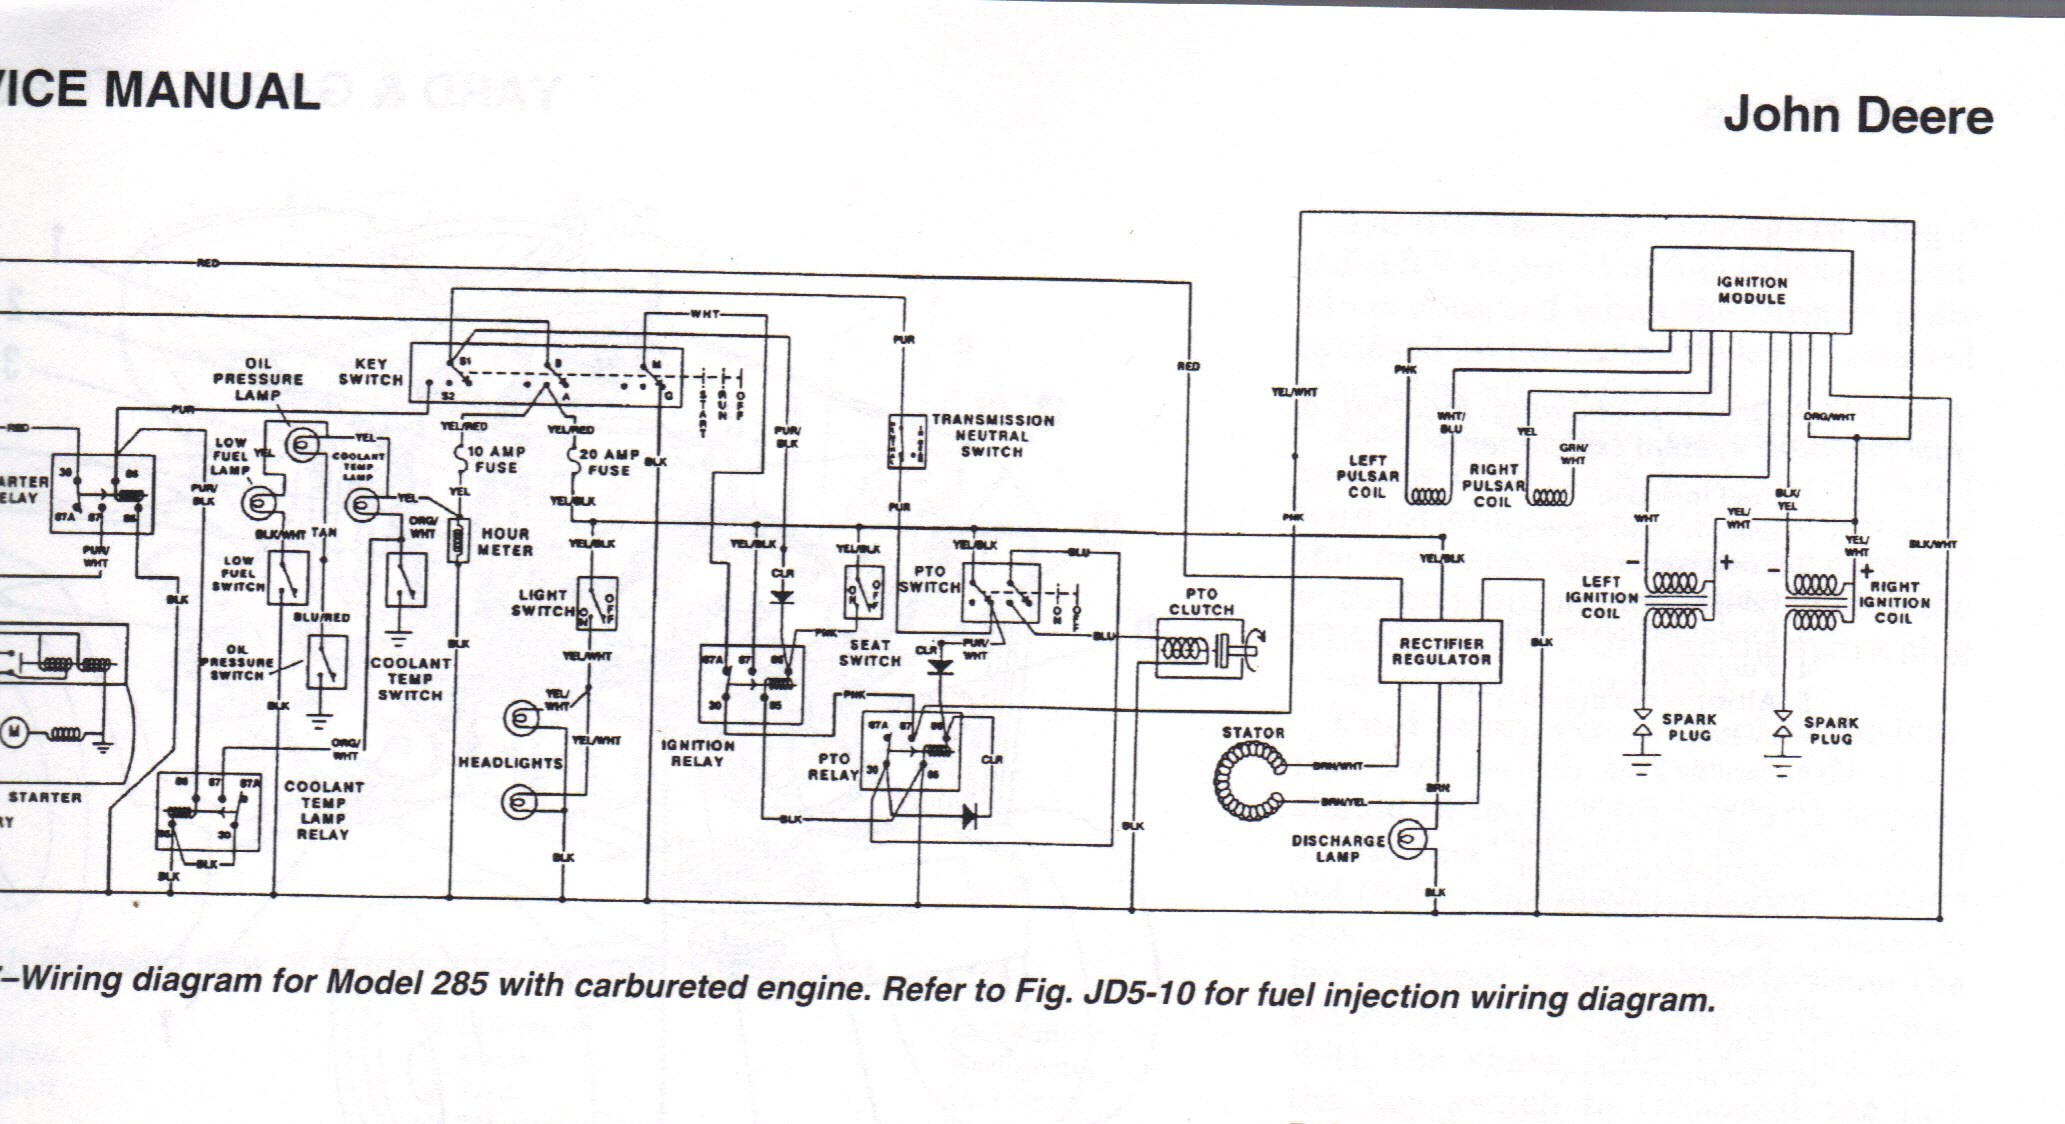 John Deere 320d Wiring Harness Diagram Not Lossing 110 Tractor 4310 Wire Third Level Rh 4 19 21 Jacobwinterstein Com Riding Mower Lawn Electrical